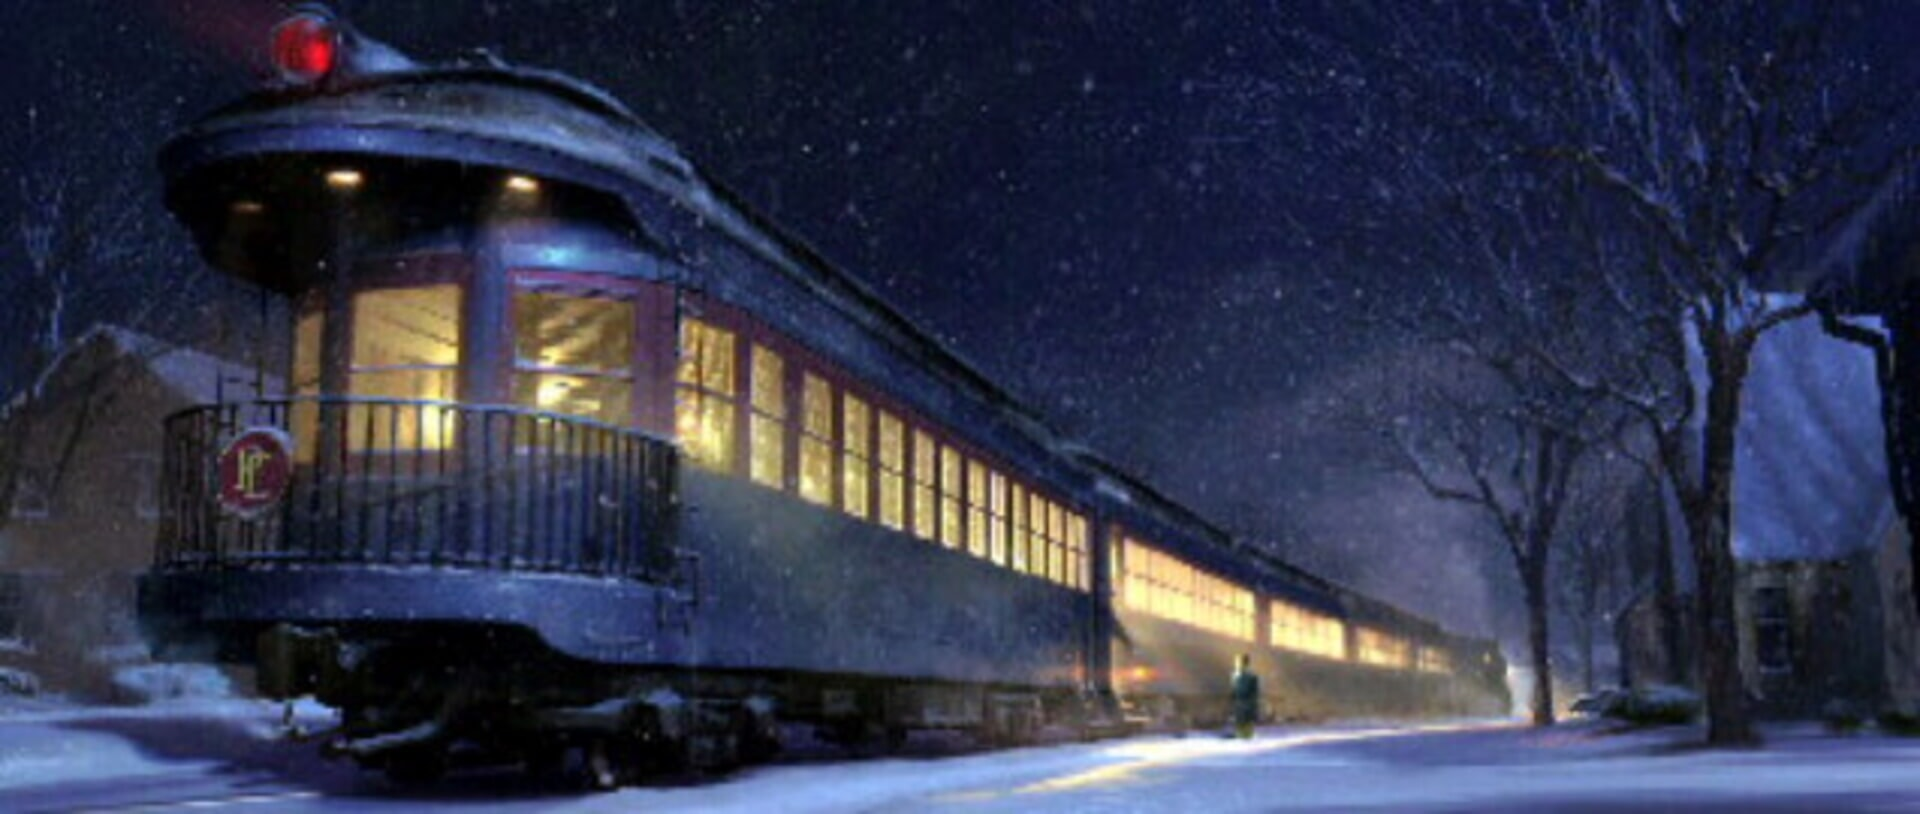 The Polar Express - Image 16